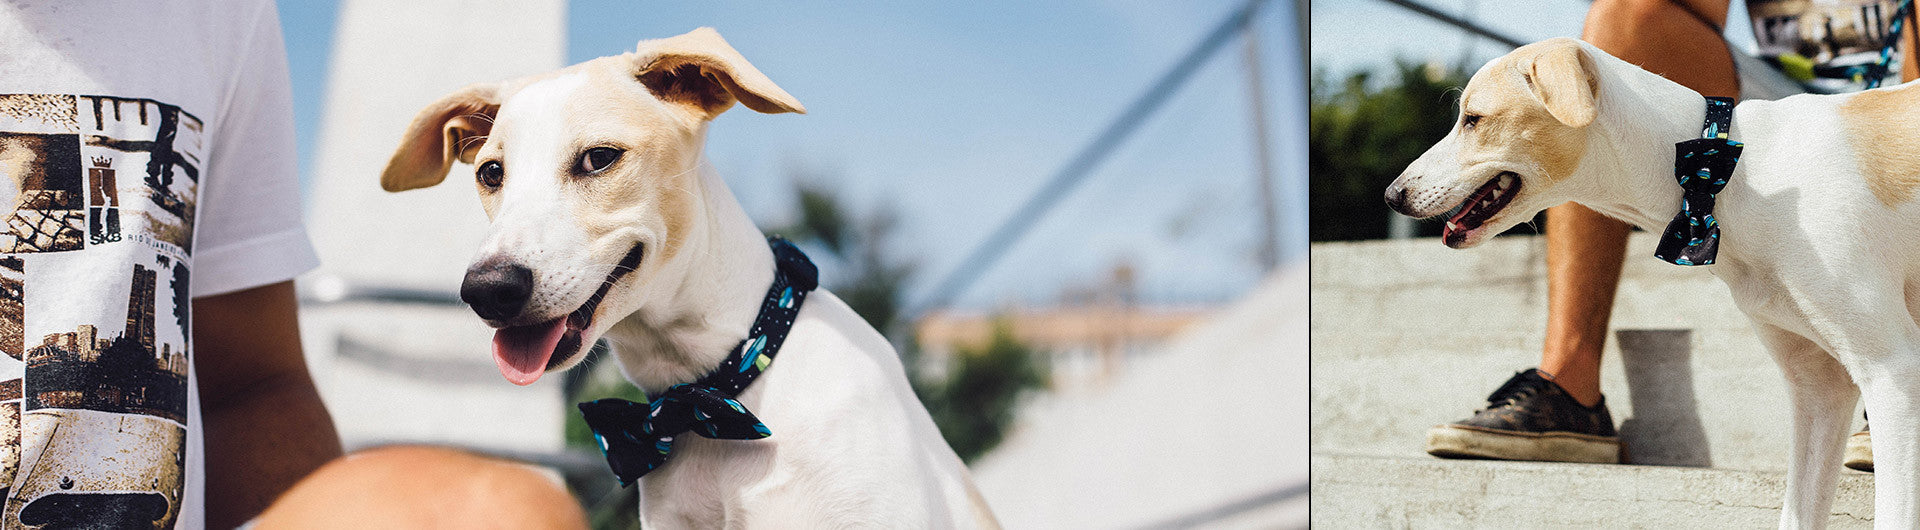 Area 51 | Dog Collar